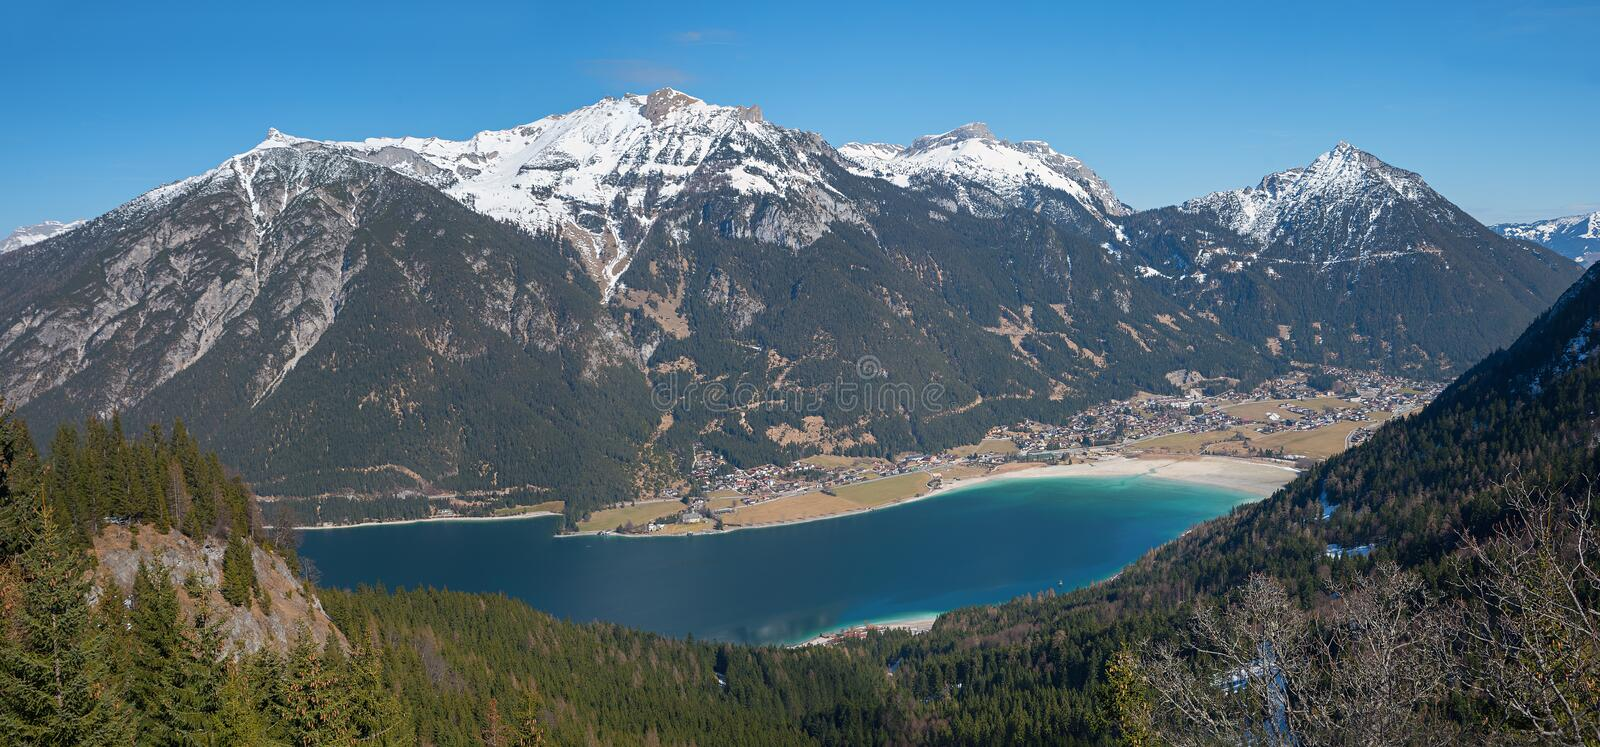 pictorial austrian landscape with view to lake achensee and rofan mountain mass royalty free stock image